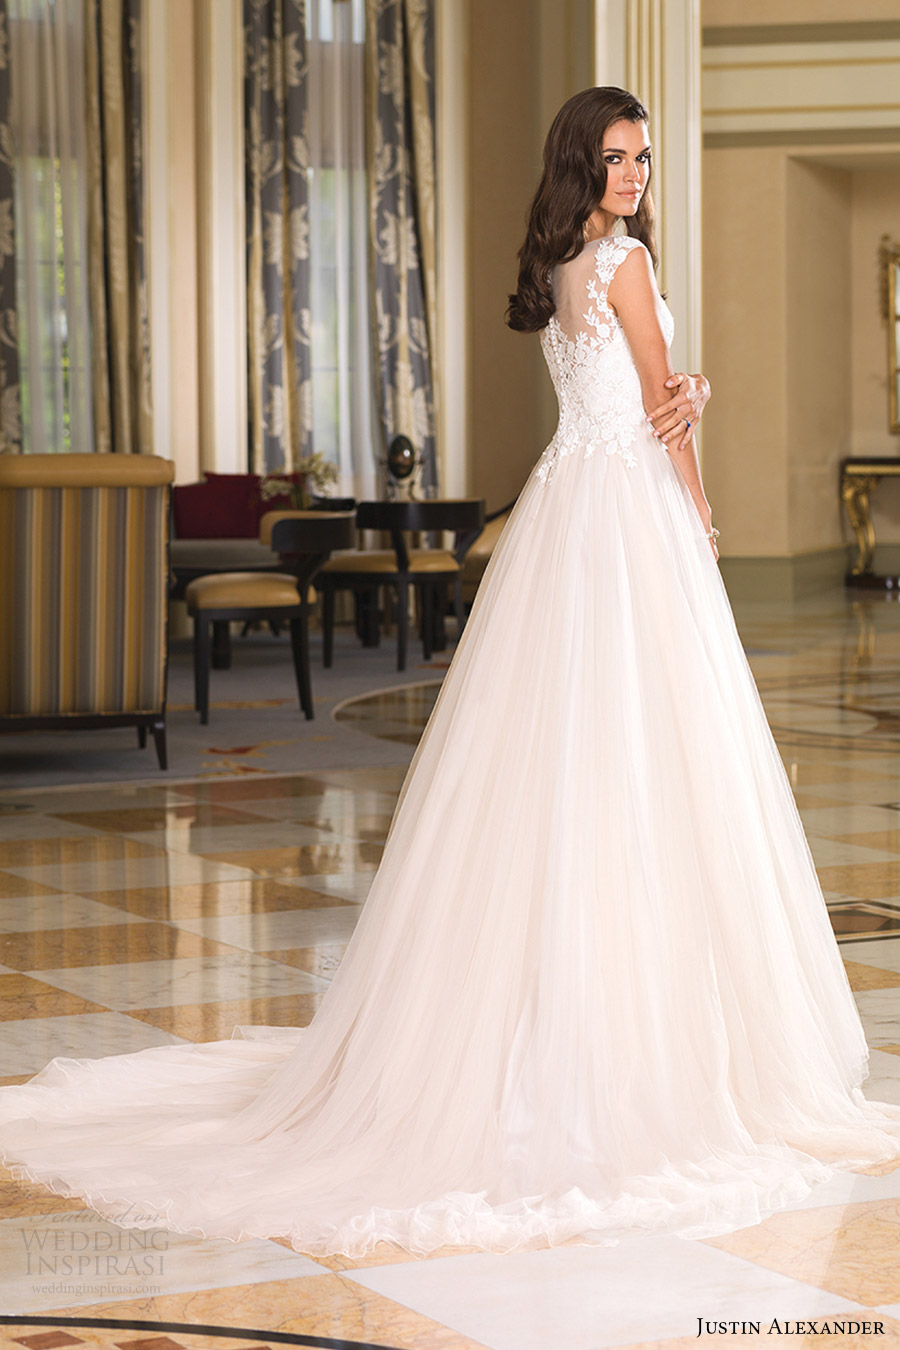 justin alexander bridal fall 2016 cap sleeves illusion bateau neck ball gown wedding dress (8852) sv train romantic